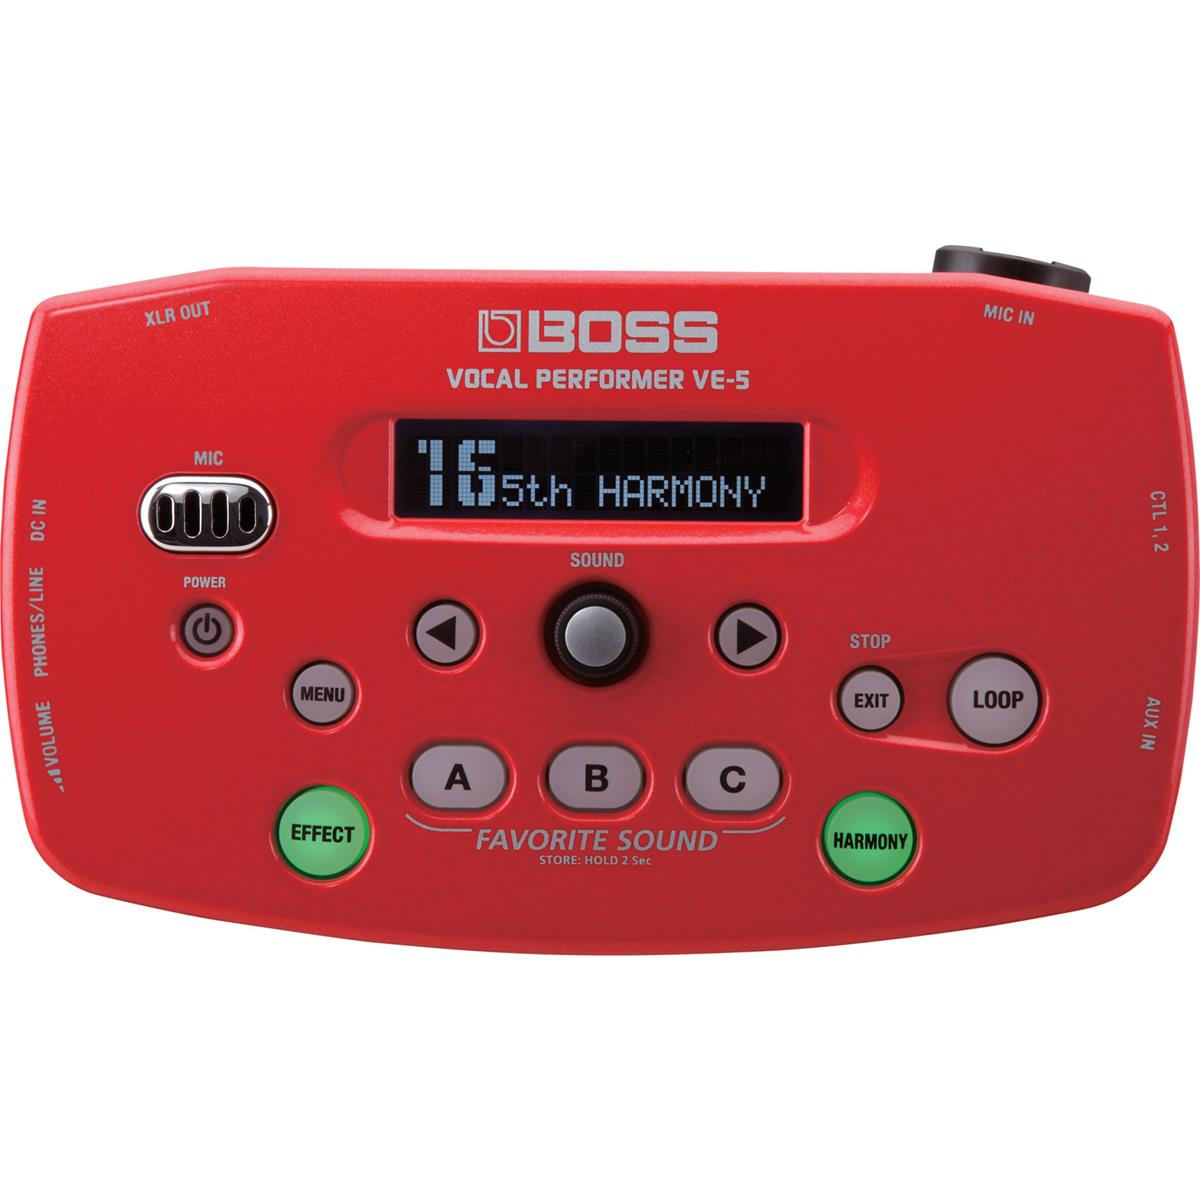 BOSS-VE-5-RD-COLORE-ROSSO-VOCAL-PERFORMER-sku-12880